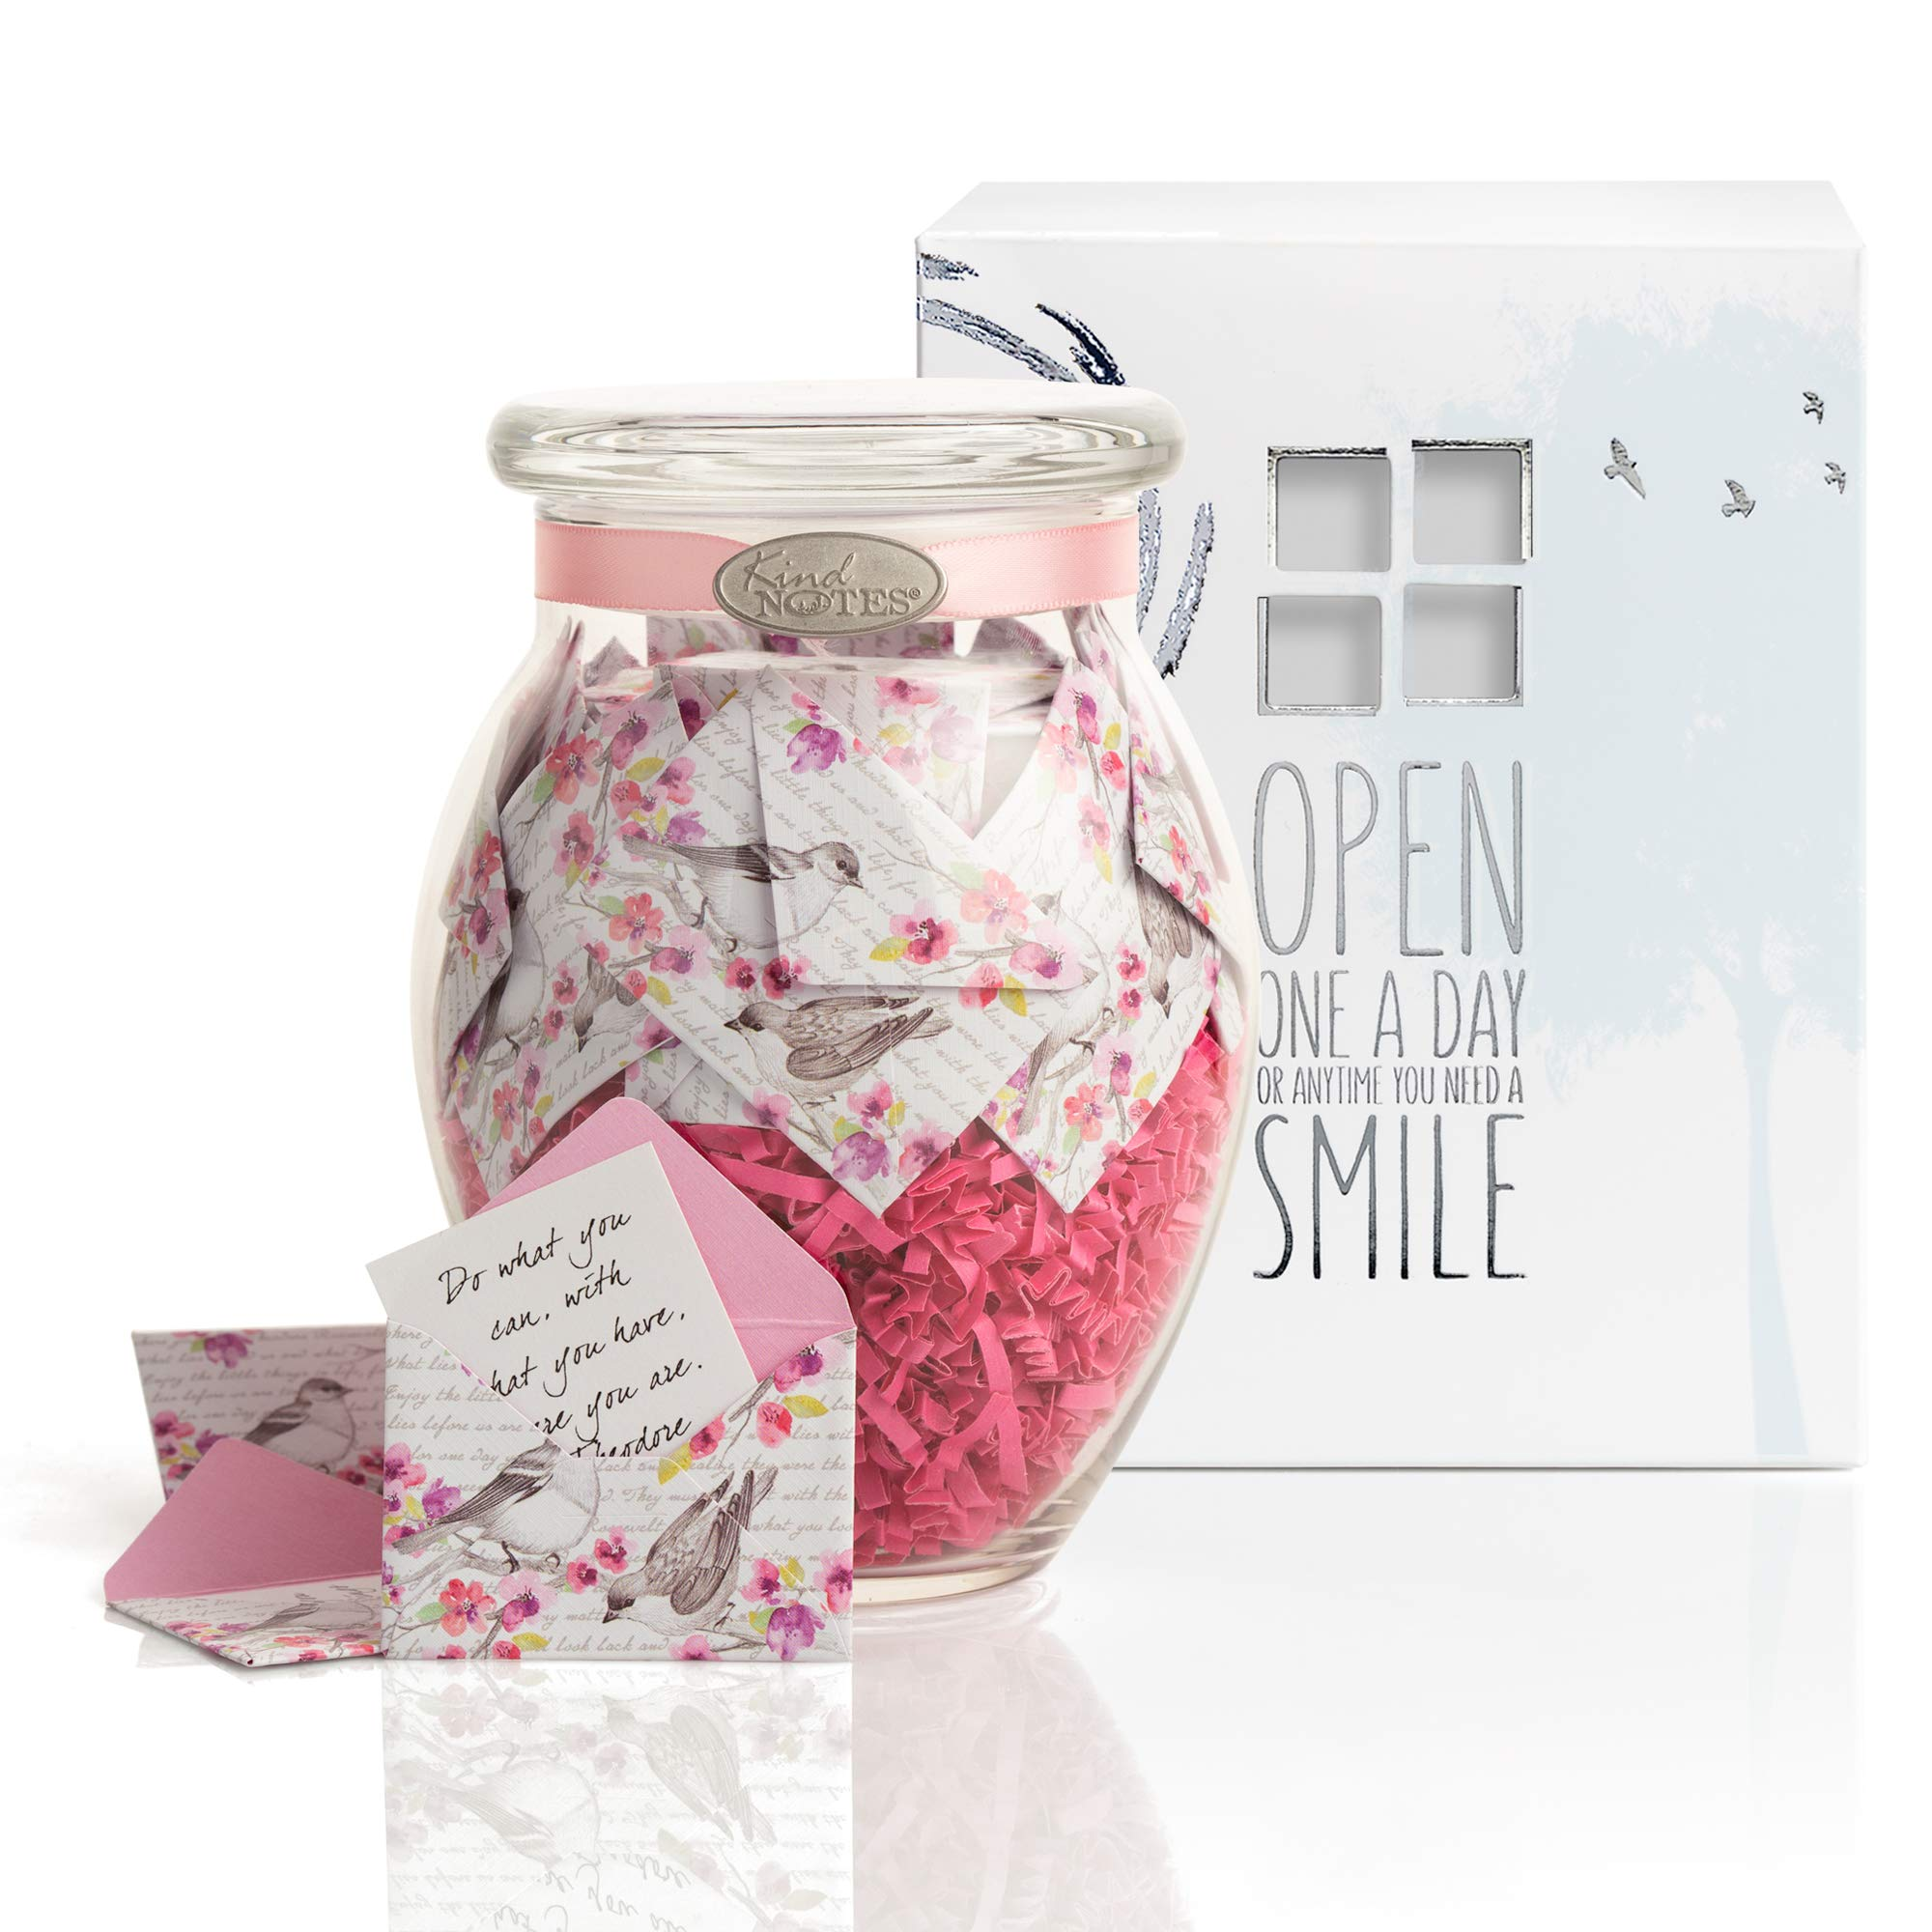 KindNotes Glass Keepsake Gift Jar with GET Well Messages - Birds and Flowers